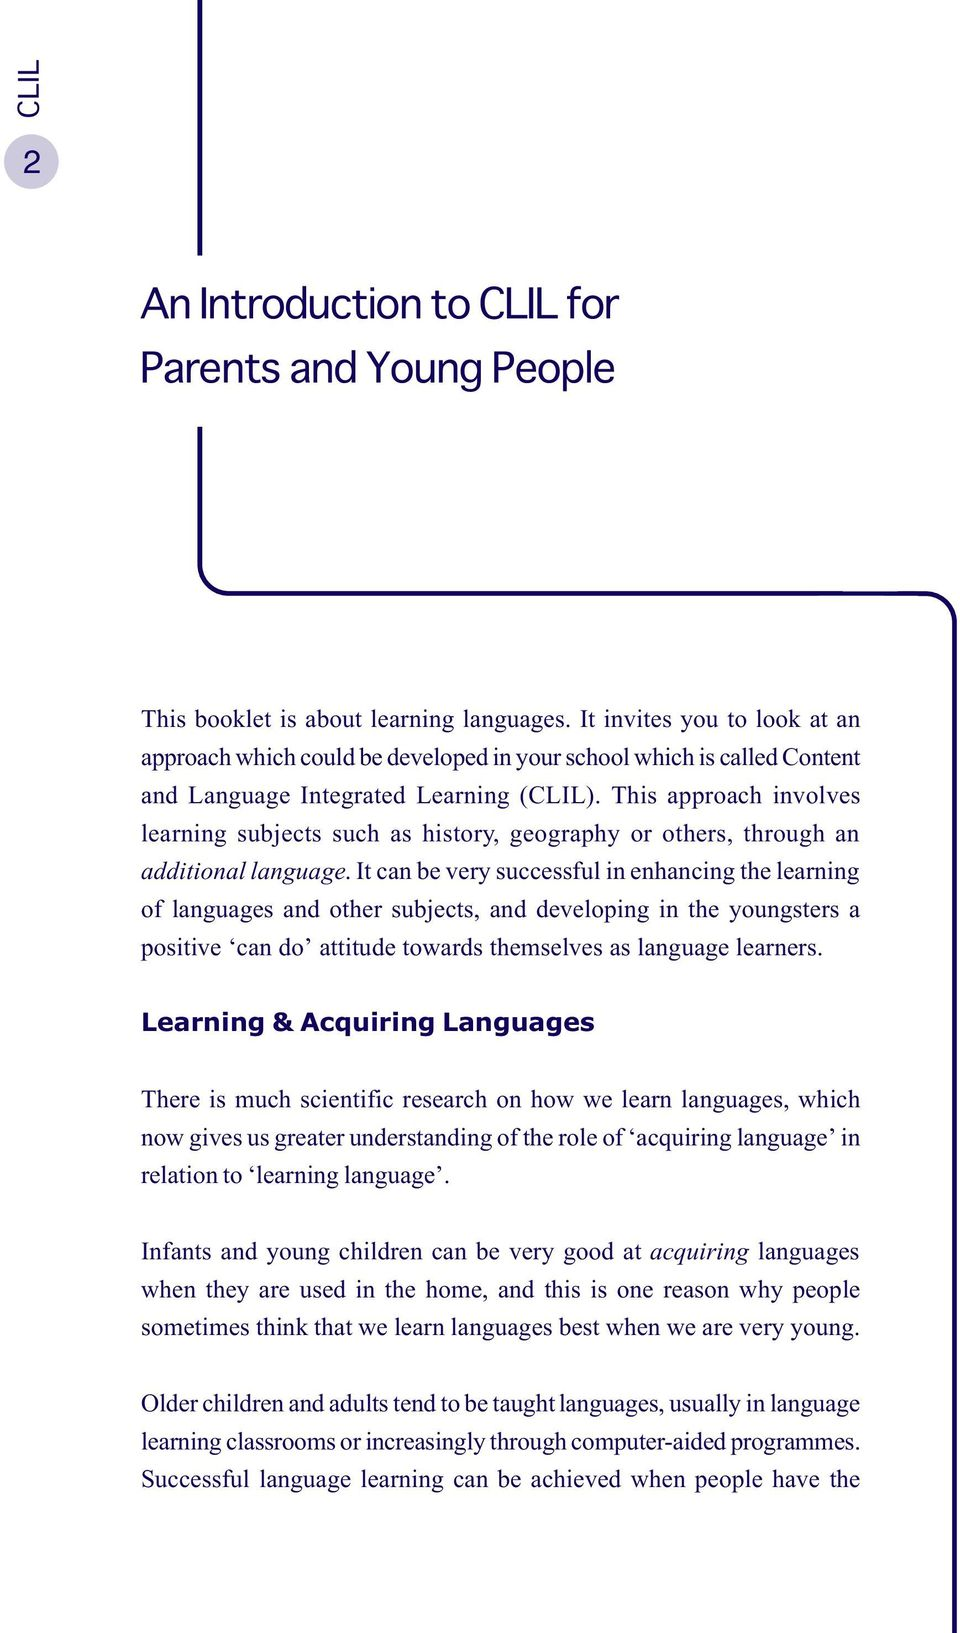 This approach involves learning subjects such as history, geography or others, through an additional language.